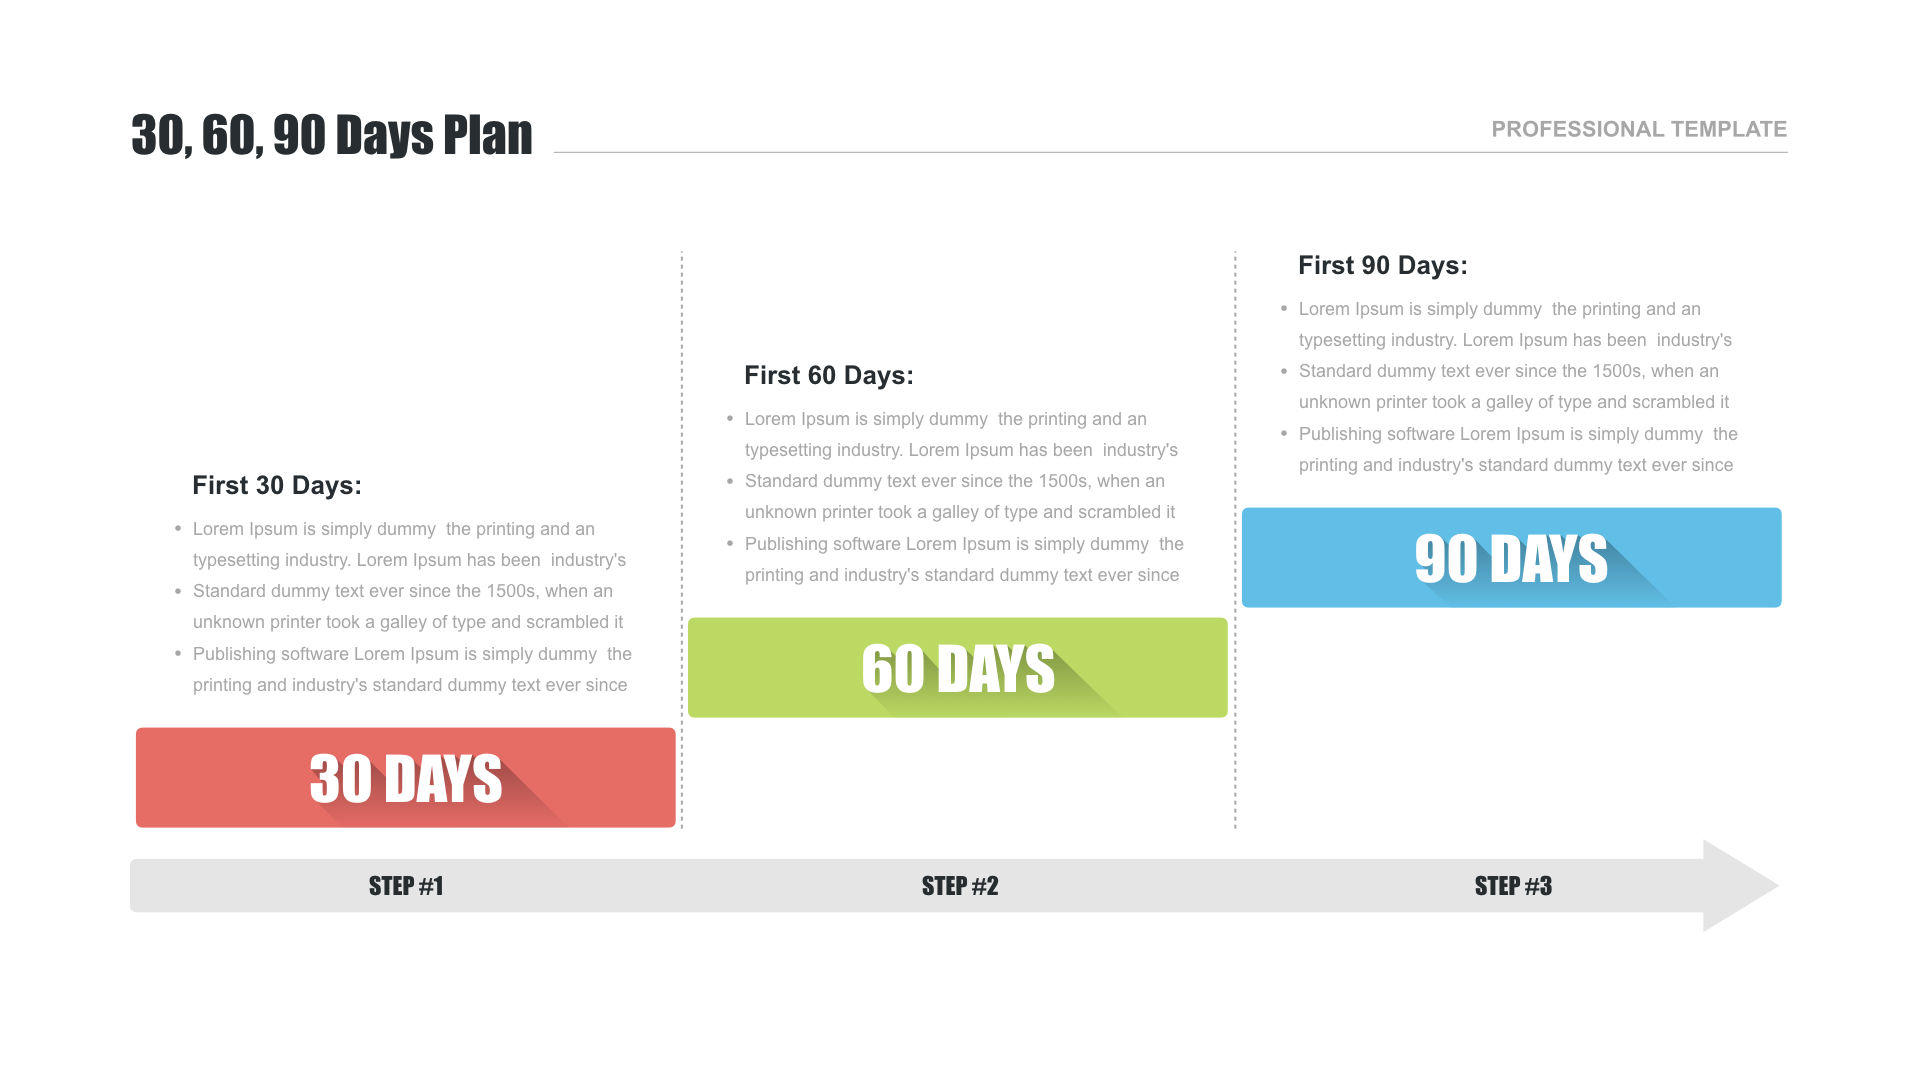 30 60 90 Day Plan For Powerpoint - Free Download Now! intended for 30 60 90 Day Plan Template Powerpoint